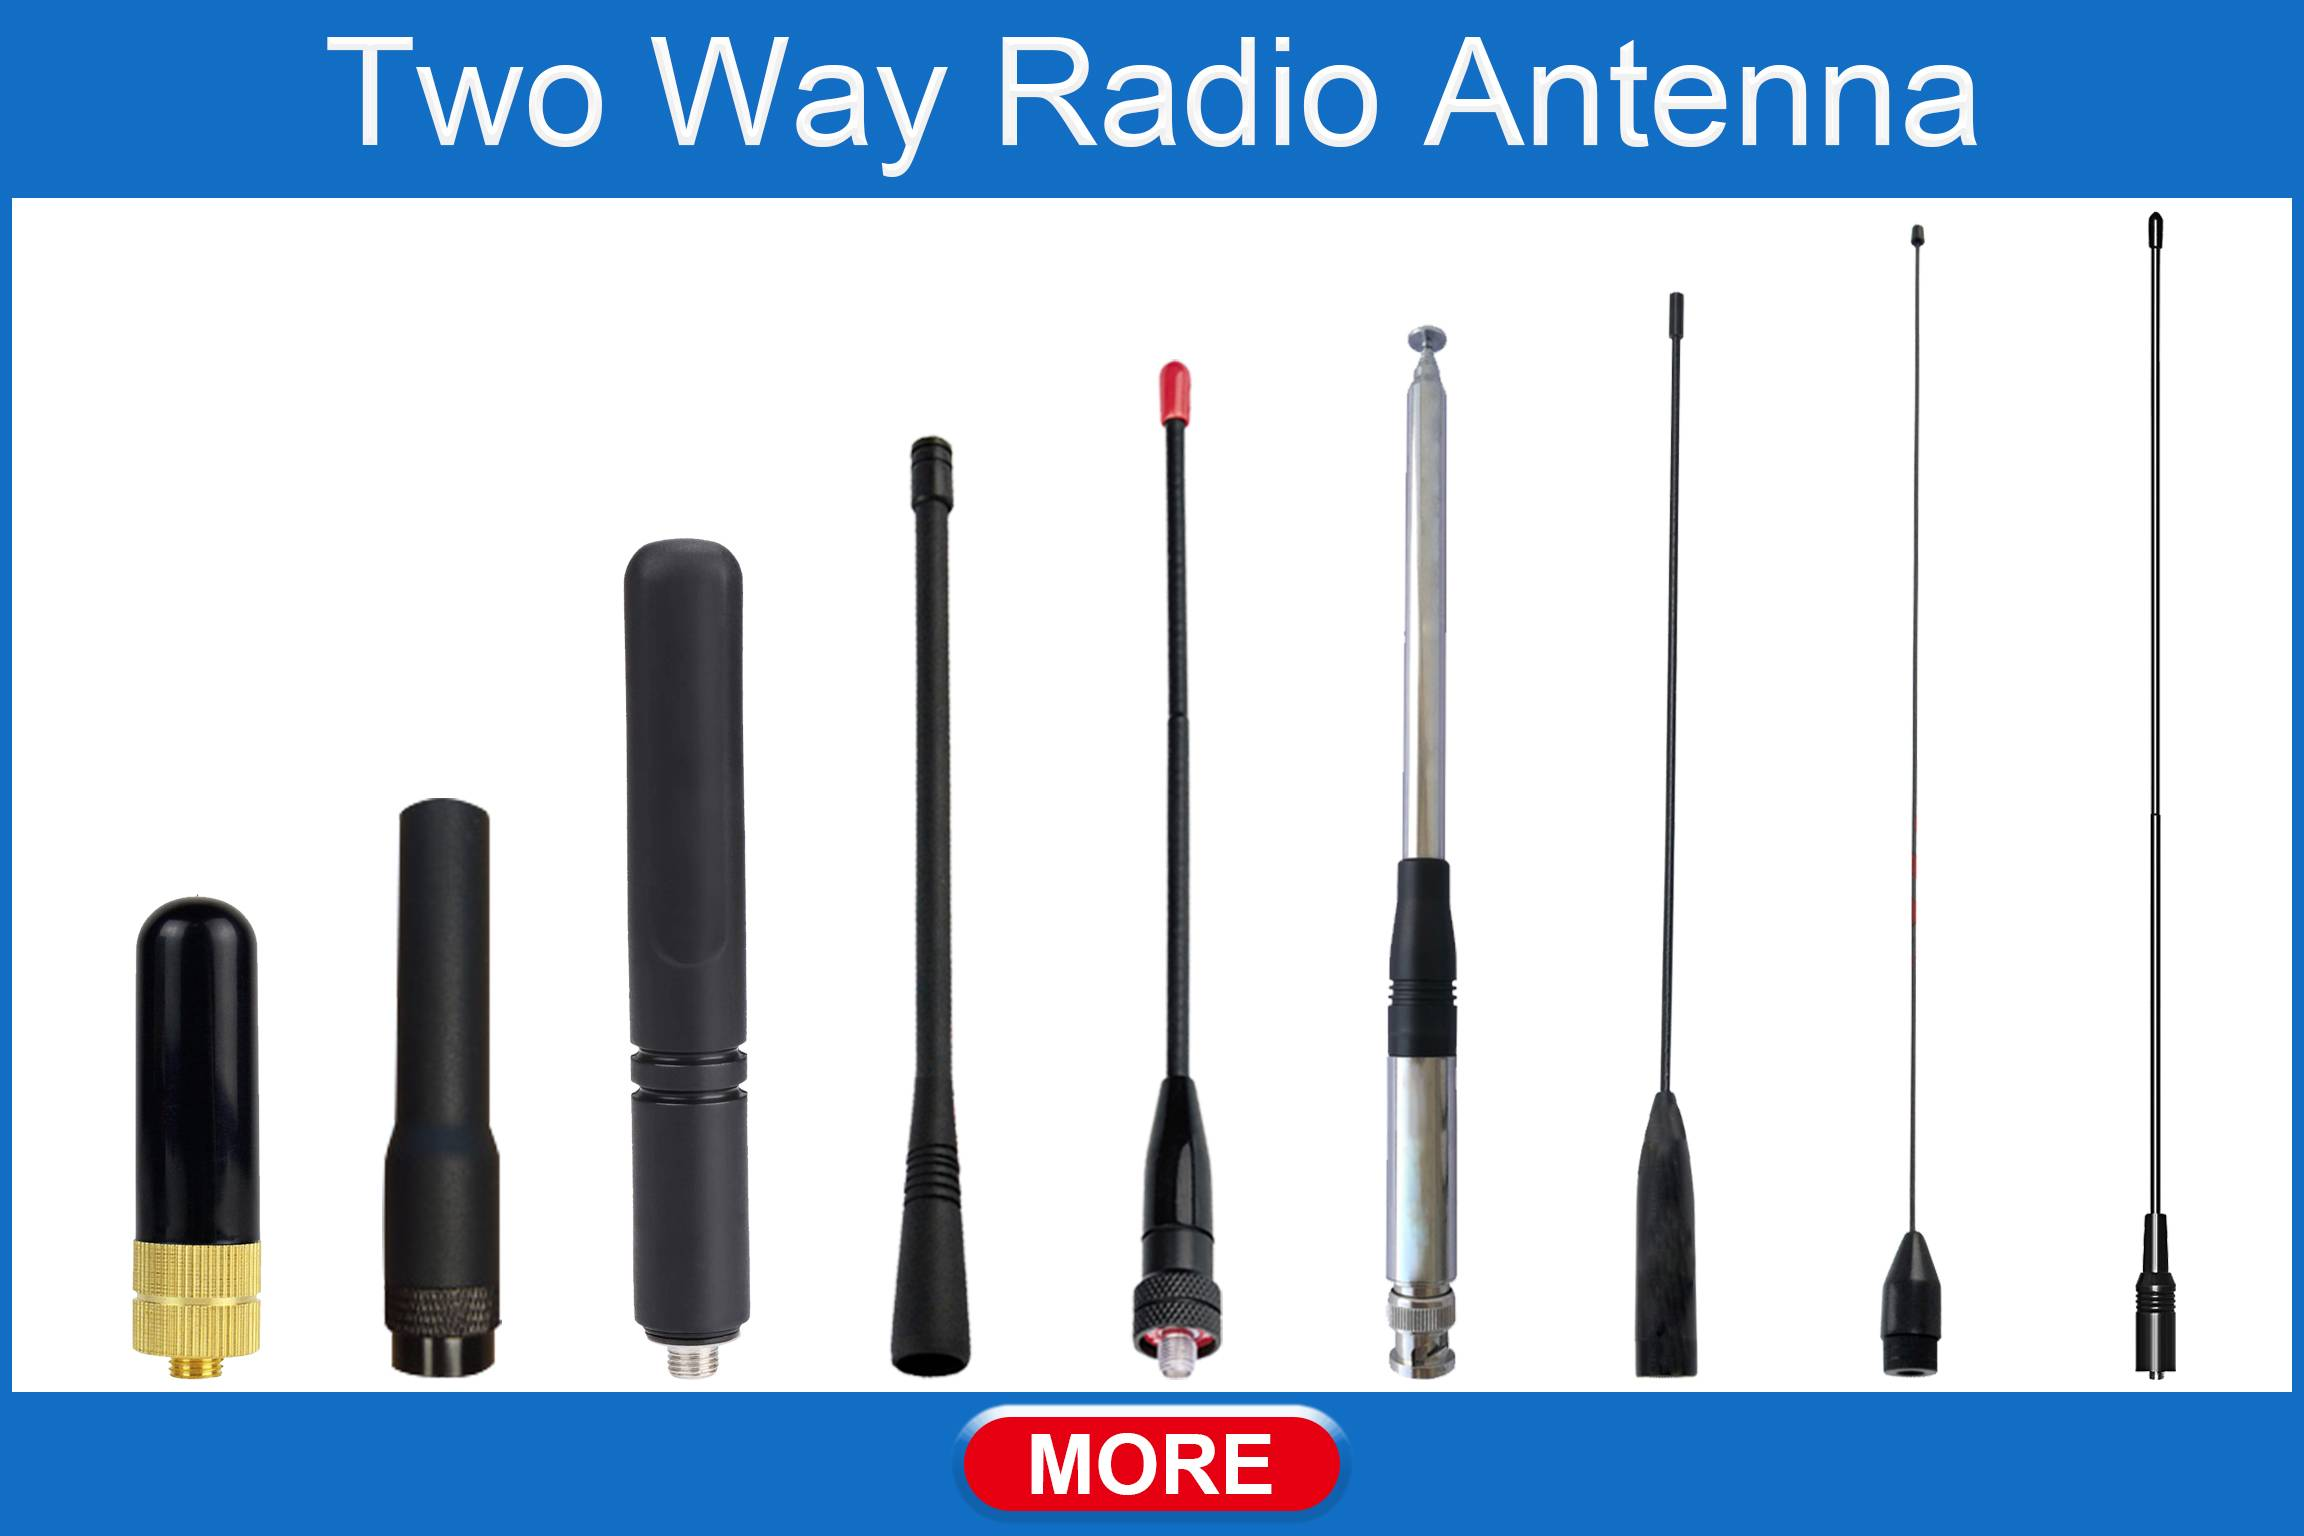 Meji Way Radio Antenna